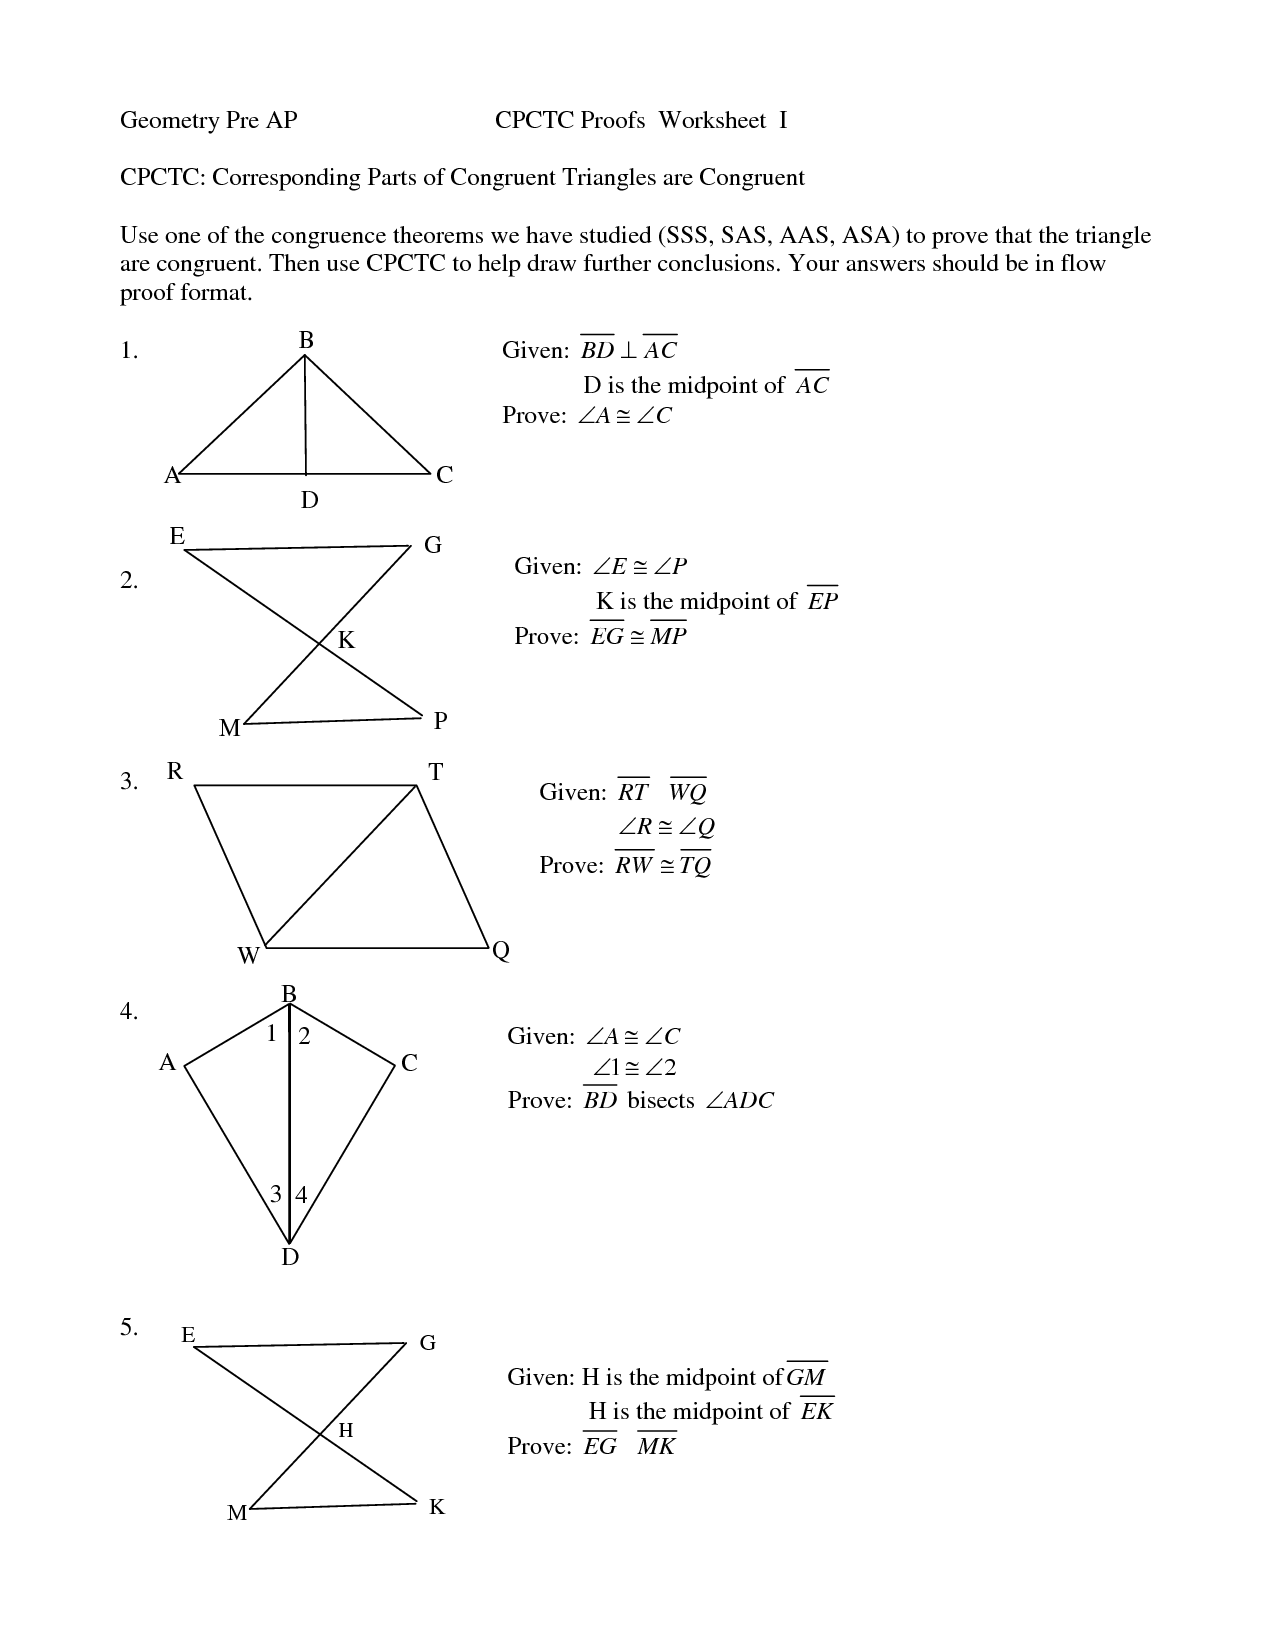 Worksheets Triangle Congruence Proofs Worksheet triangle congruence worksheet google search fabric pinterest search